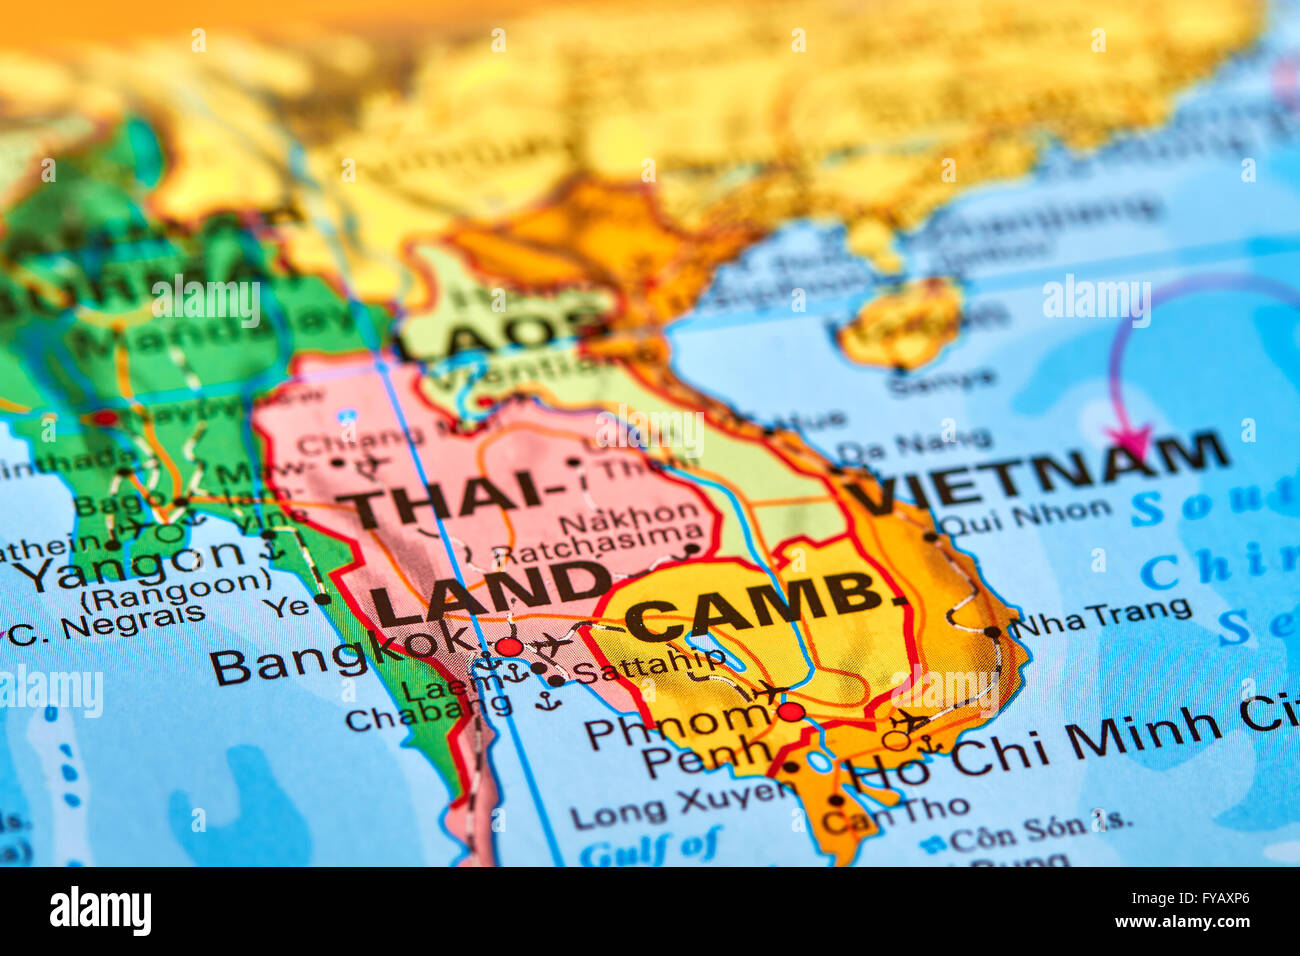 Bangkok, Capital City of Thailand on the World Map Stock Photo